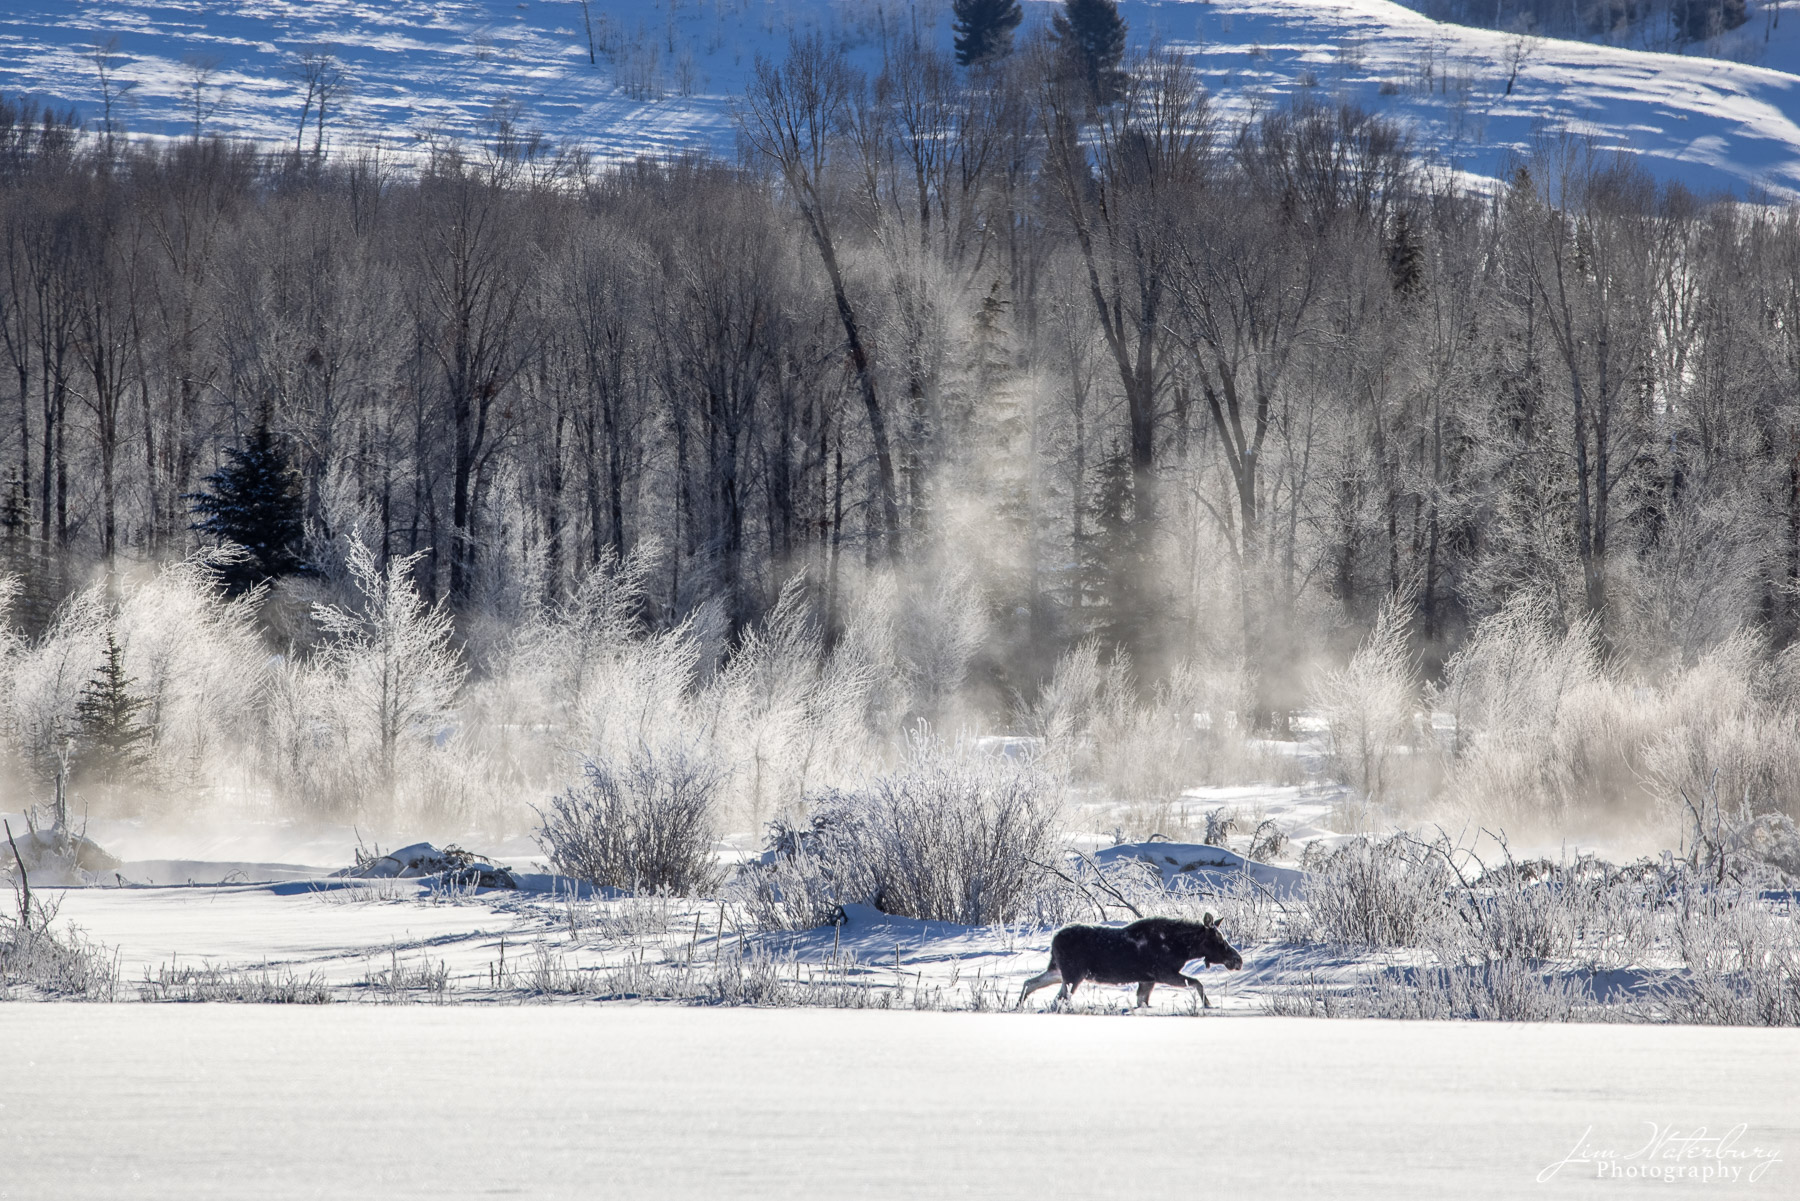 A moose makes its way through the deep snow along the Gros Ventre River in Grand Teton National Park, with mist rising in the...